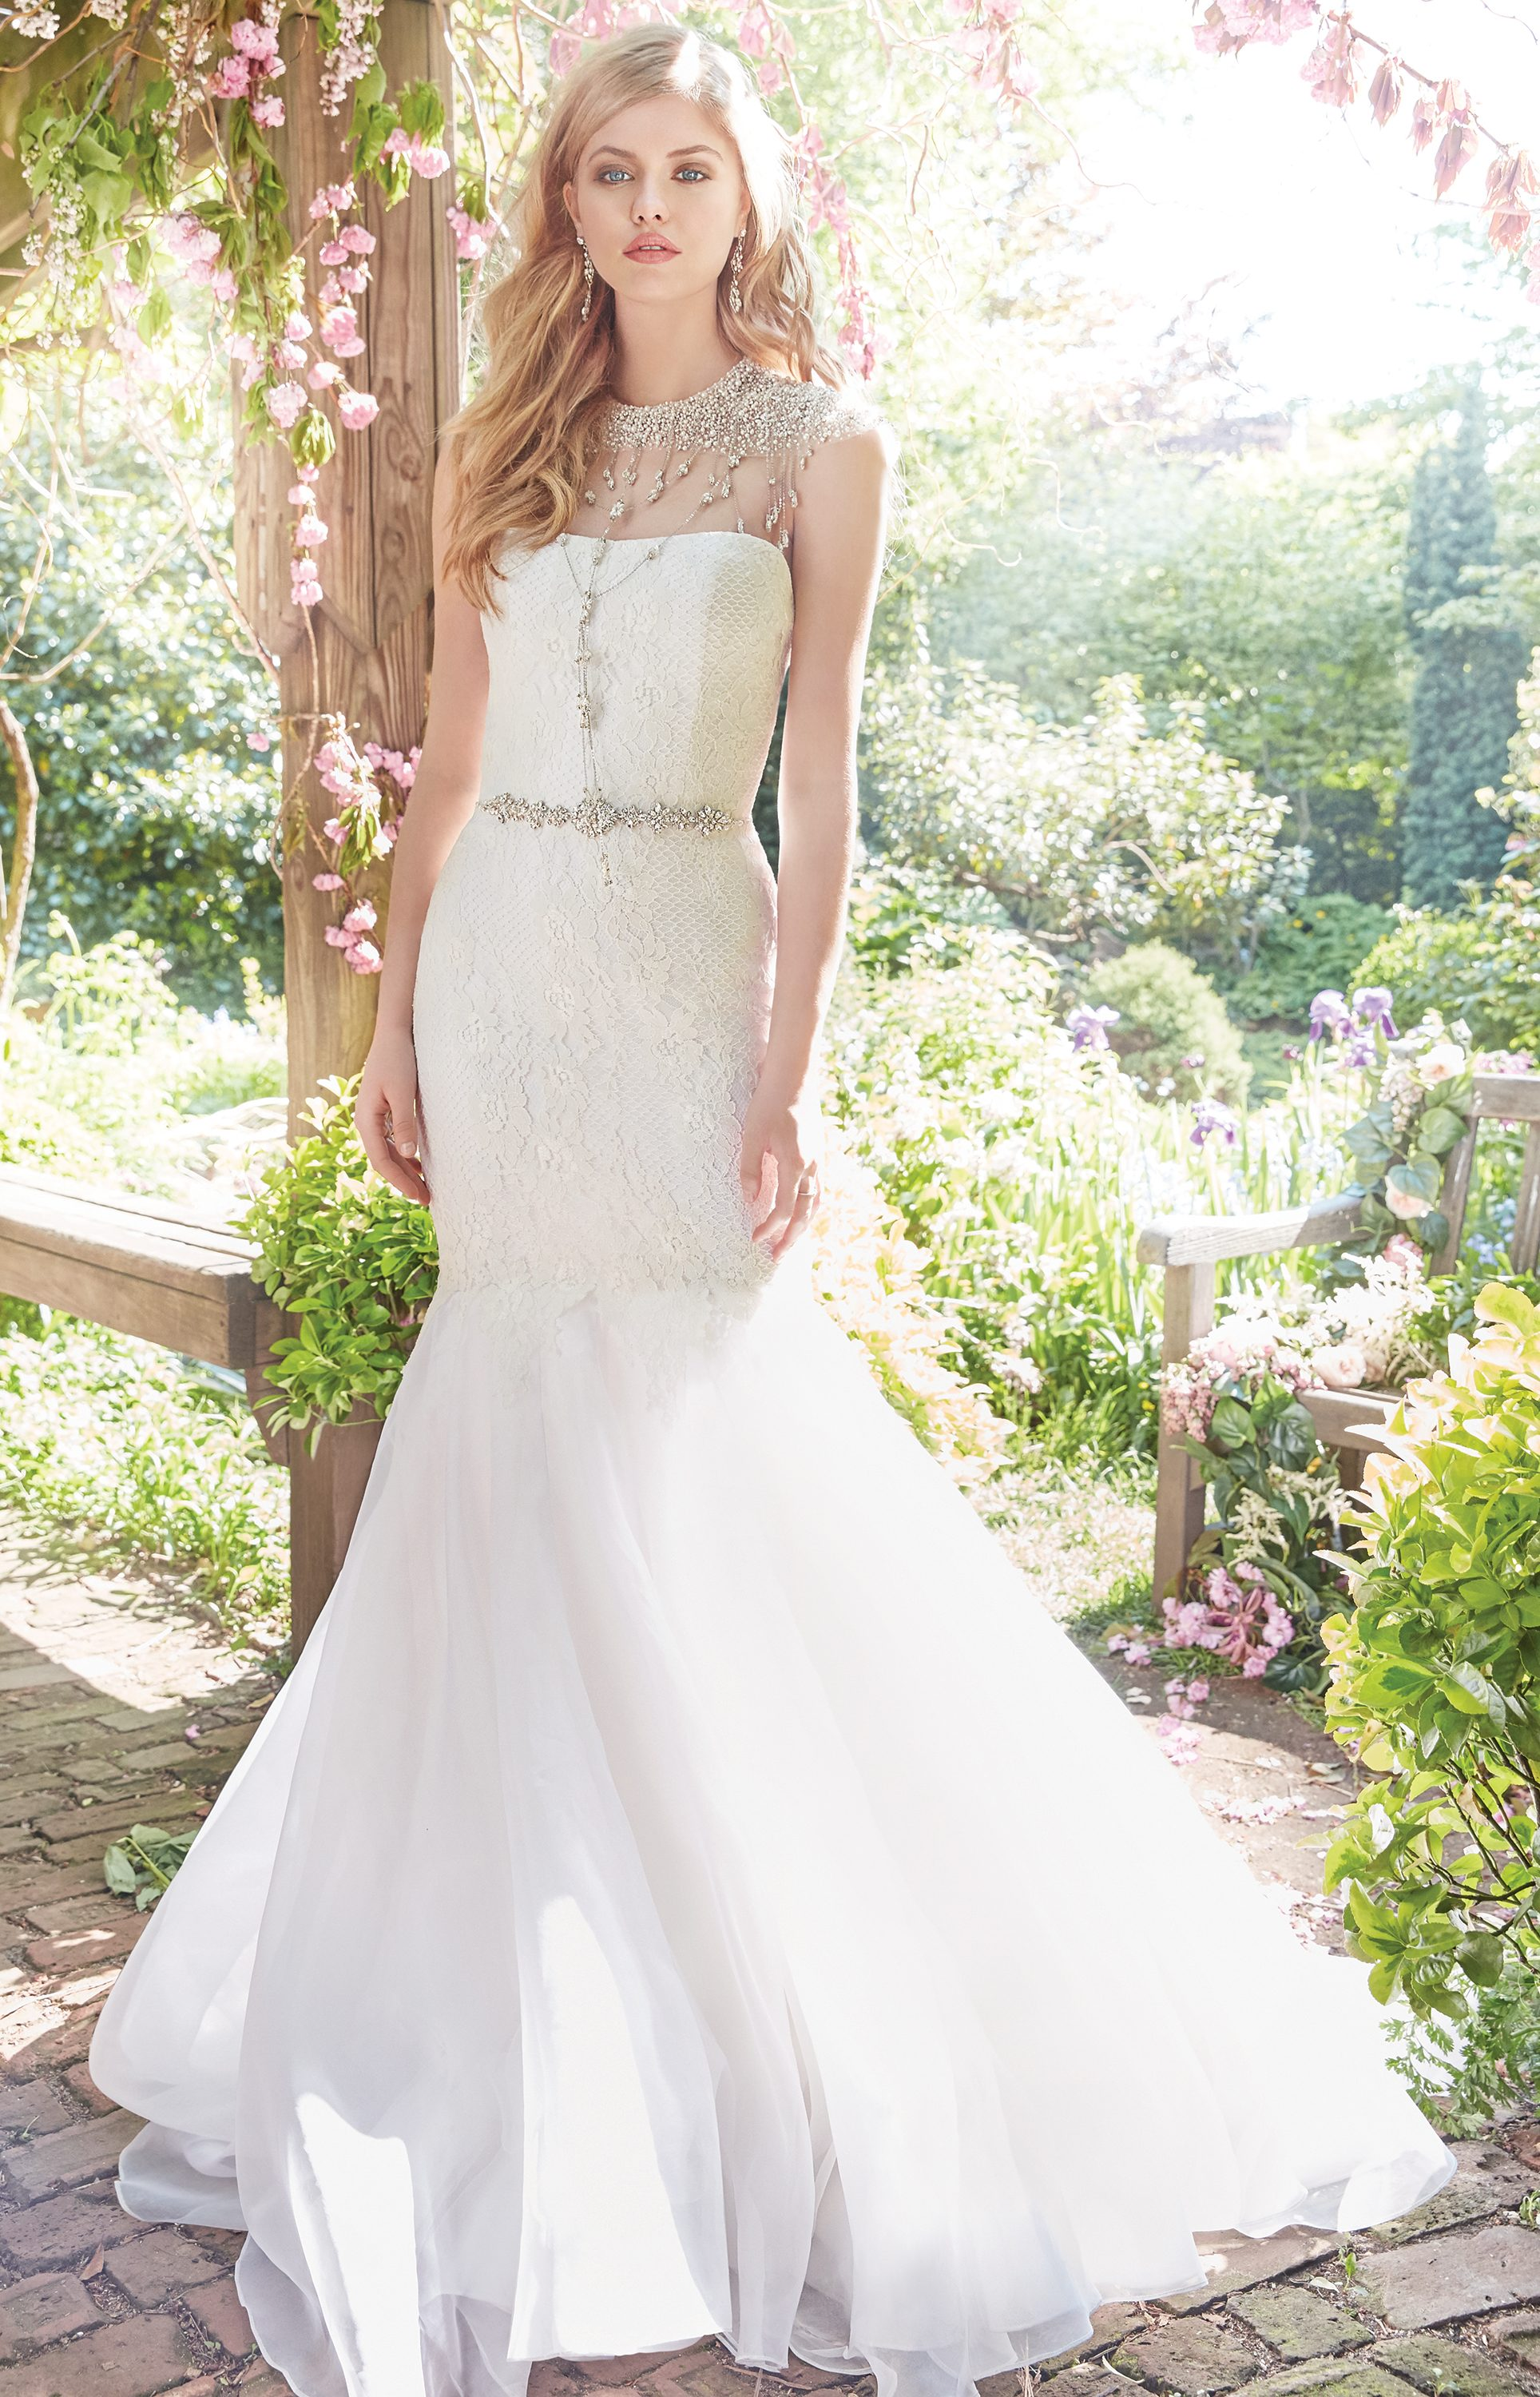 alvina-valenta-bridal-fall-2016-style-9653_6 http://itgirlweddings.com/fall-2016-alvina-valenta-wedding-collection/